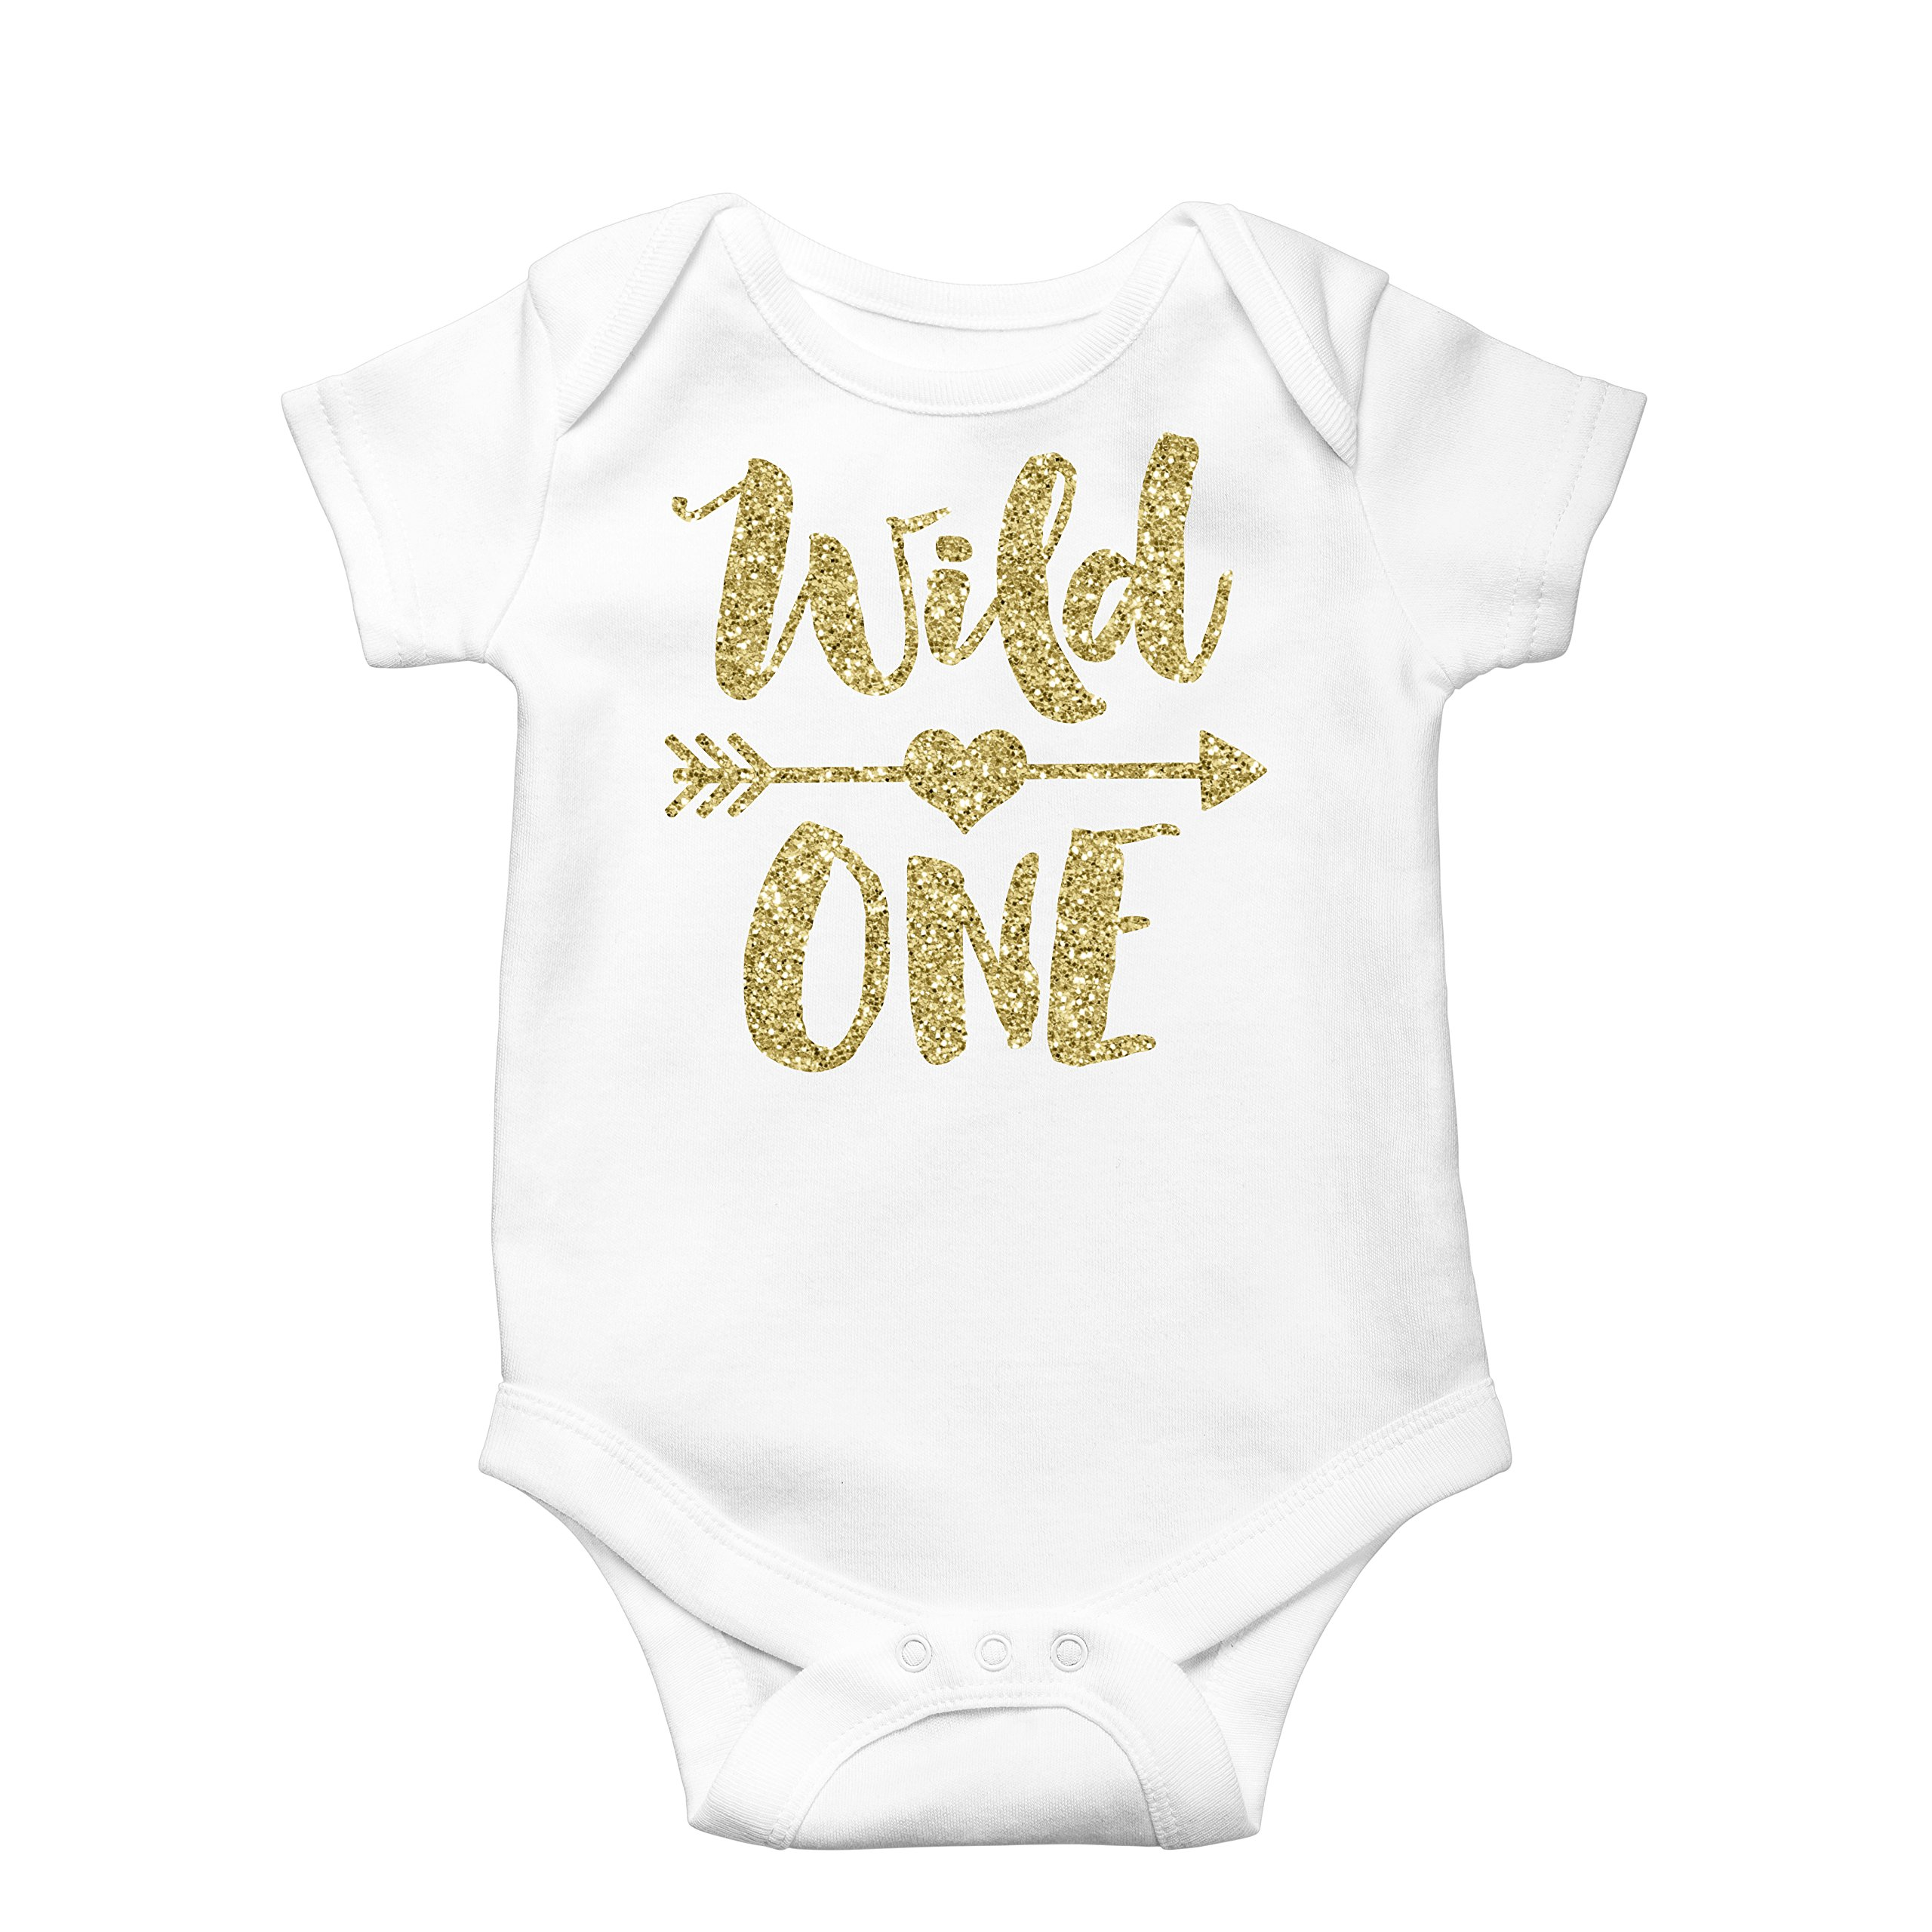 fe742ad3d7b Galleon - Wild One Gold Glitter Girls 1st Birthday Bodysuit First Birthday  Outfit Girl